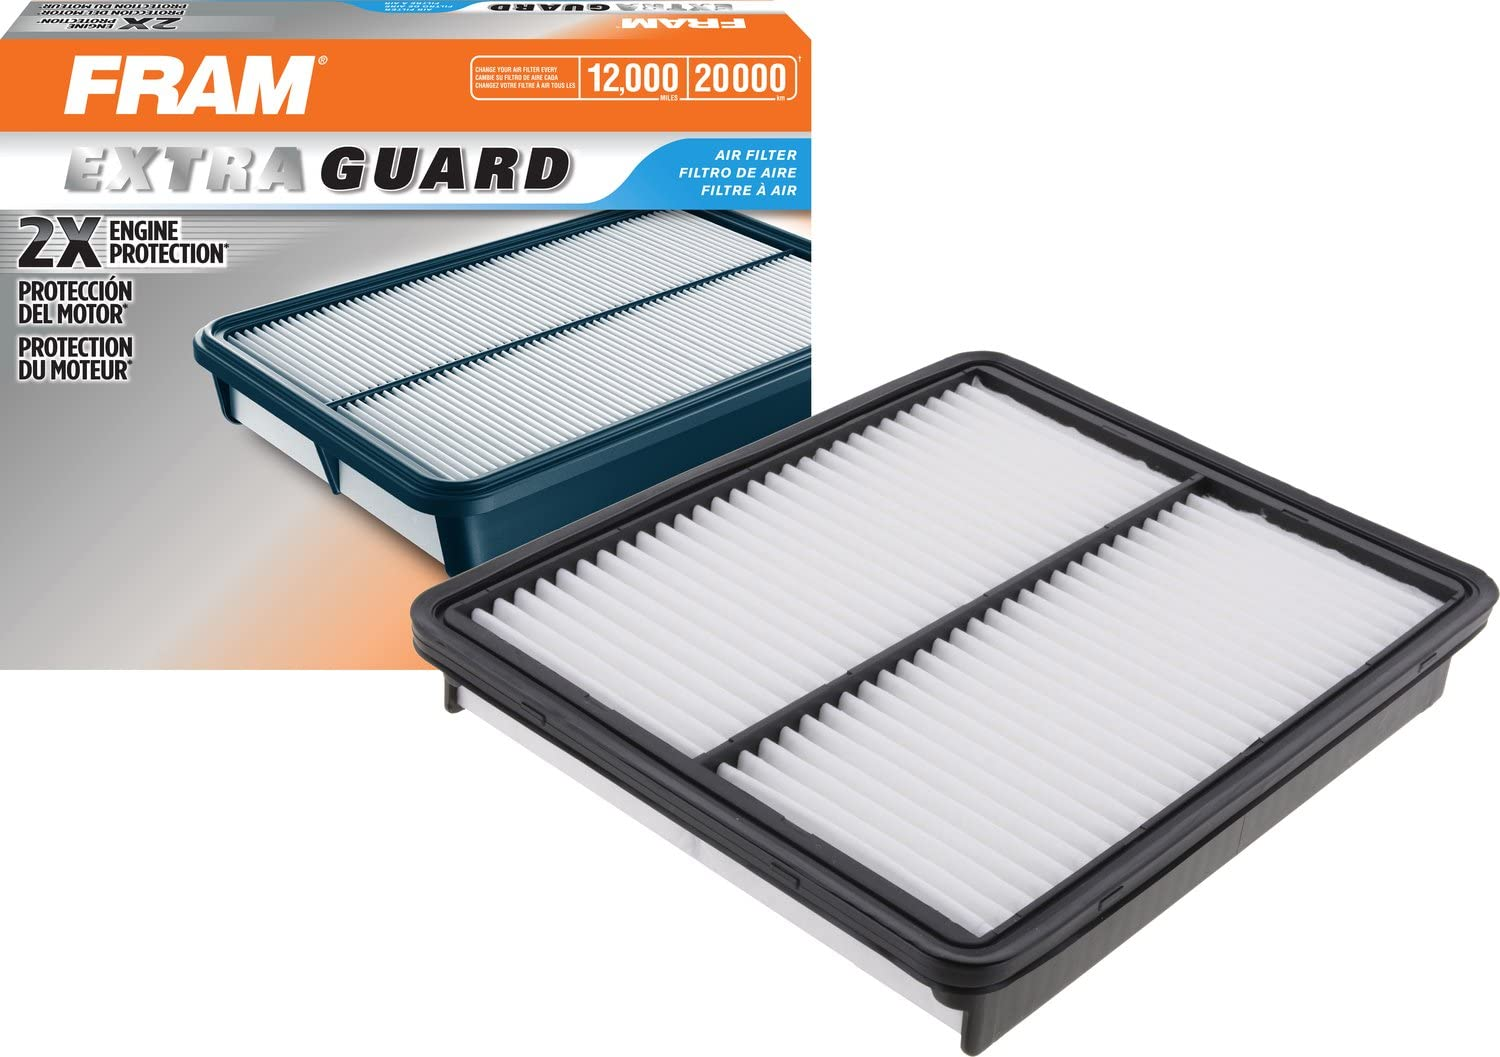 FRAM Extra Max 80% OFF Guard Air Filter Raleigh Mall CA10881 and for Hyundai Select Kia